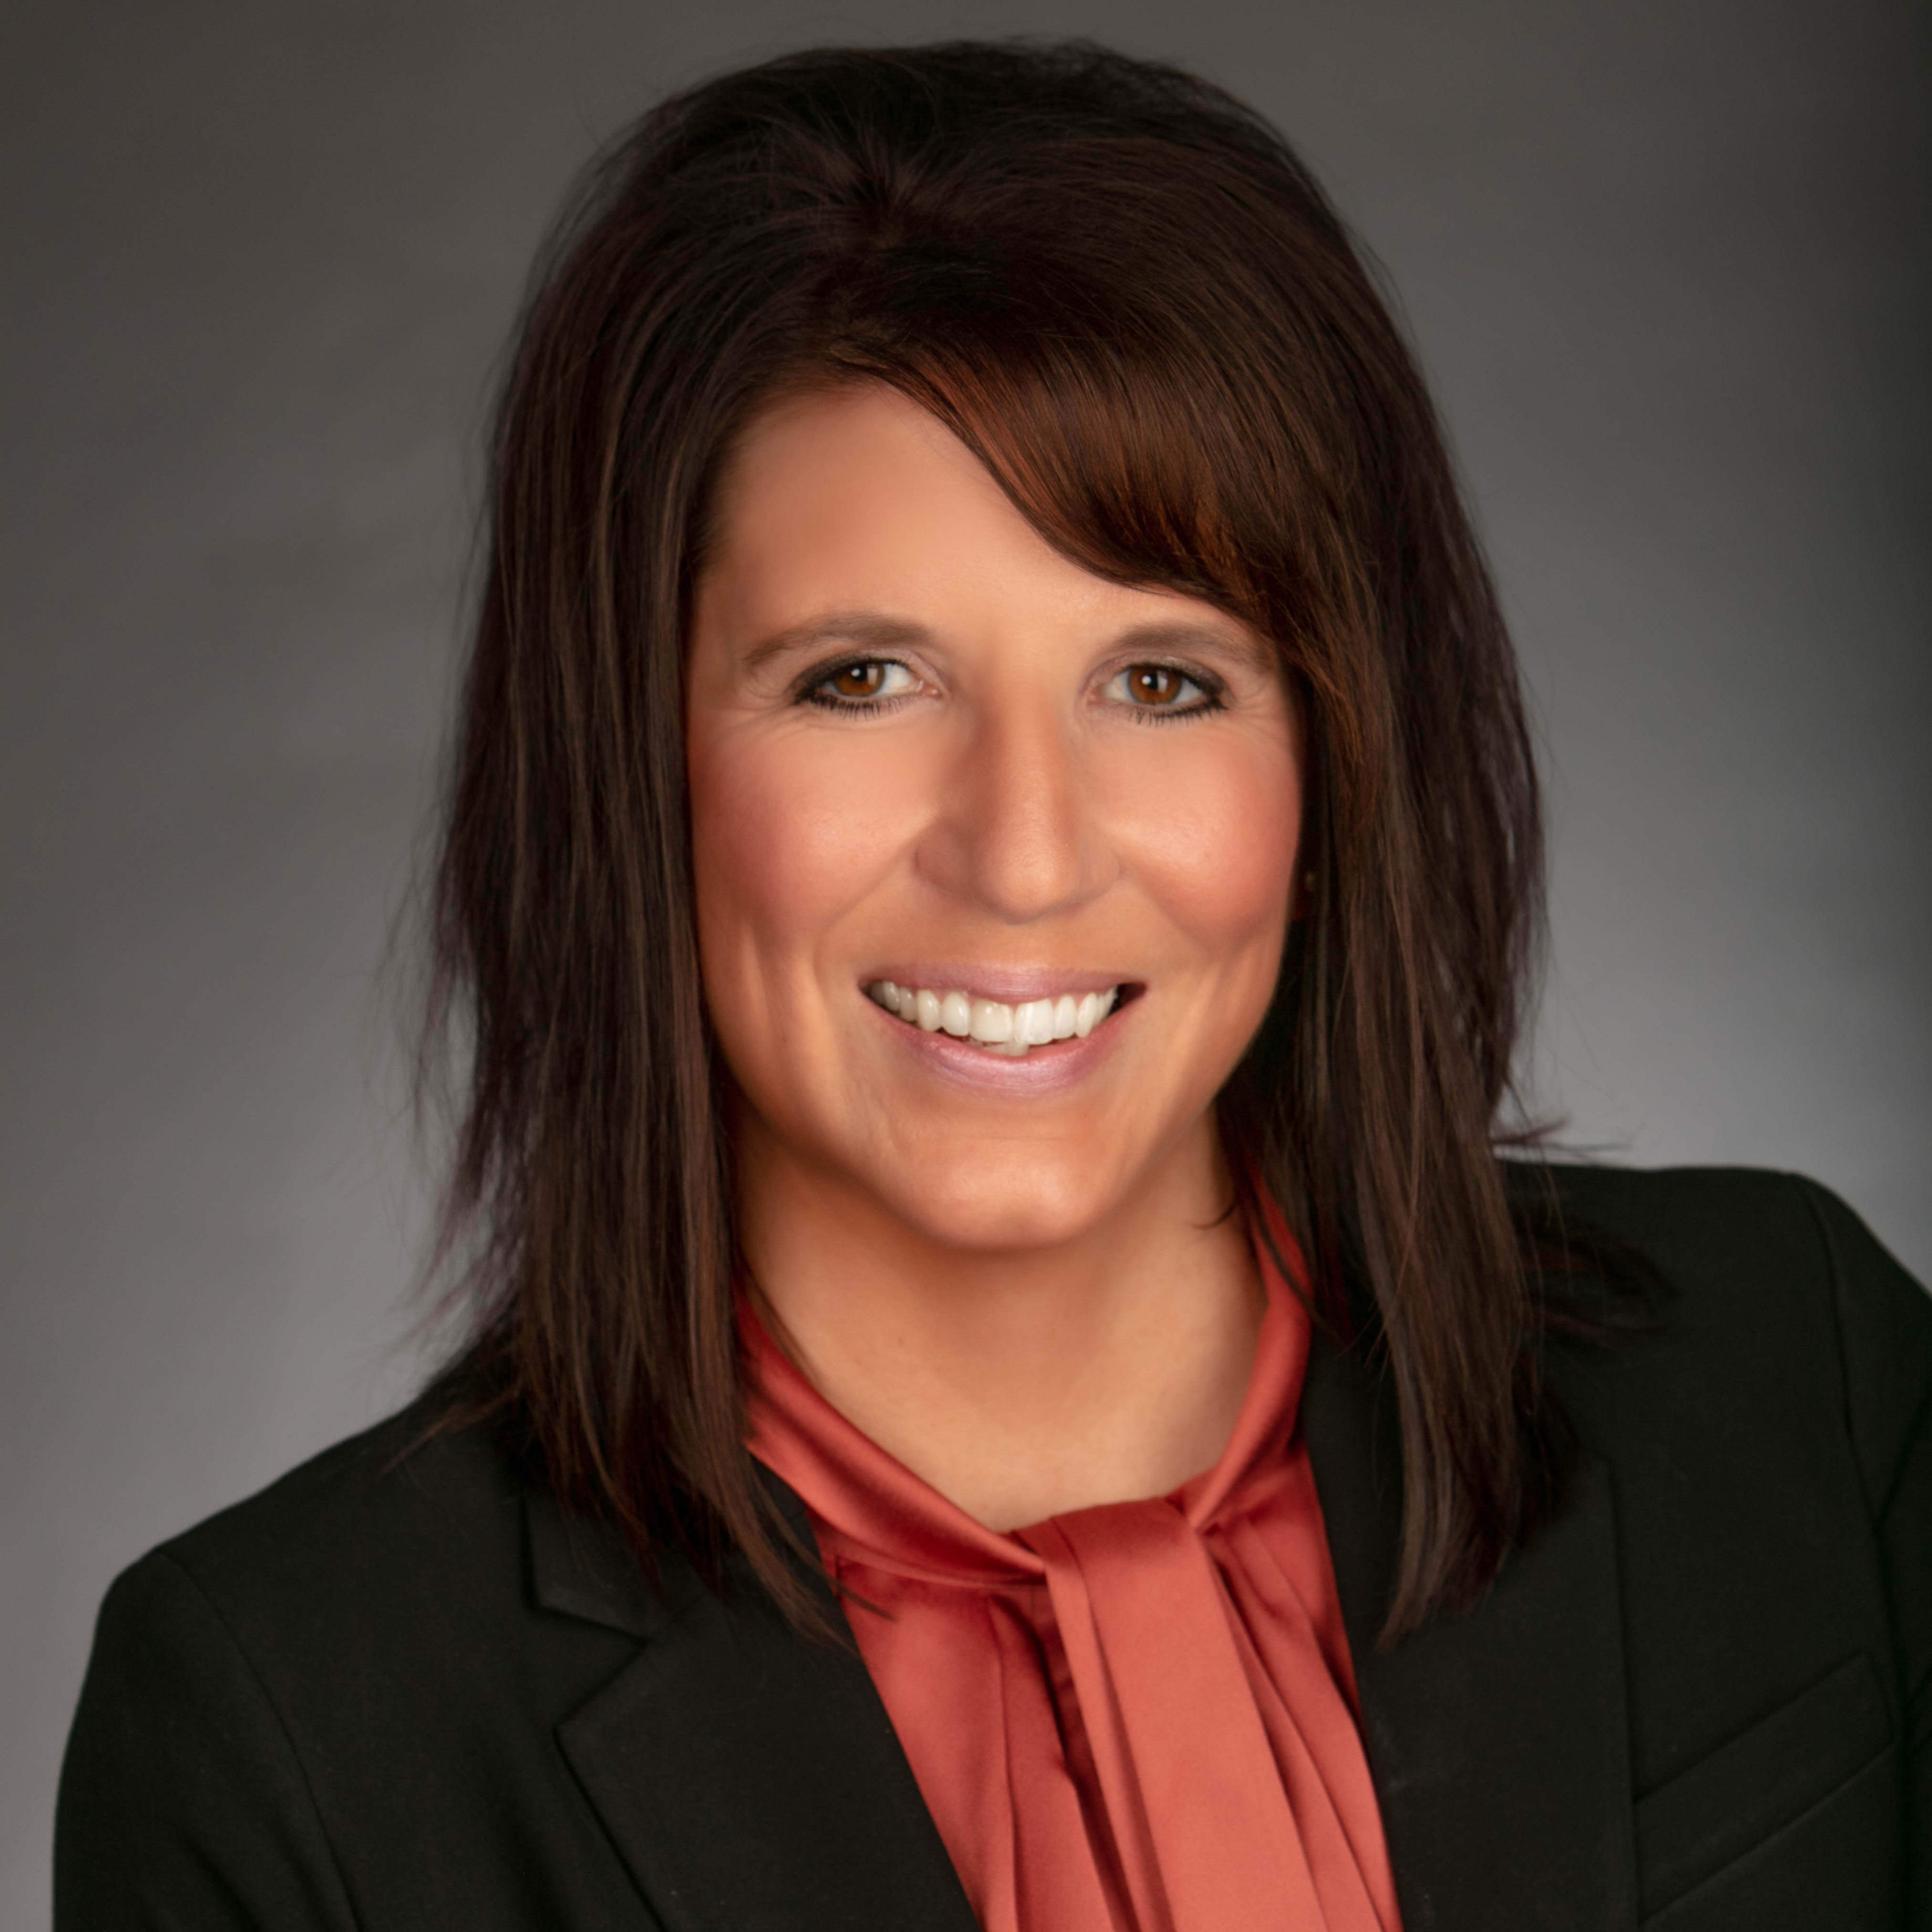 Brenda Connelly, Chief Operations Officer at The Springs Living in McMinnville, Oregon